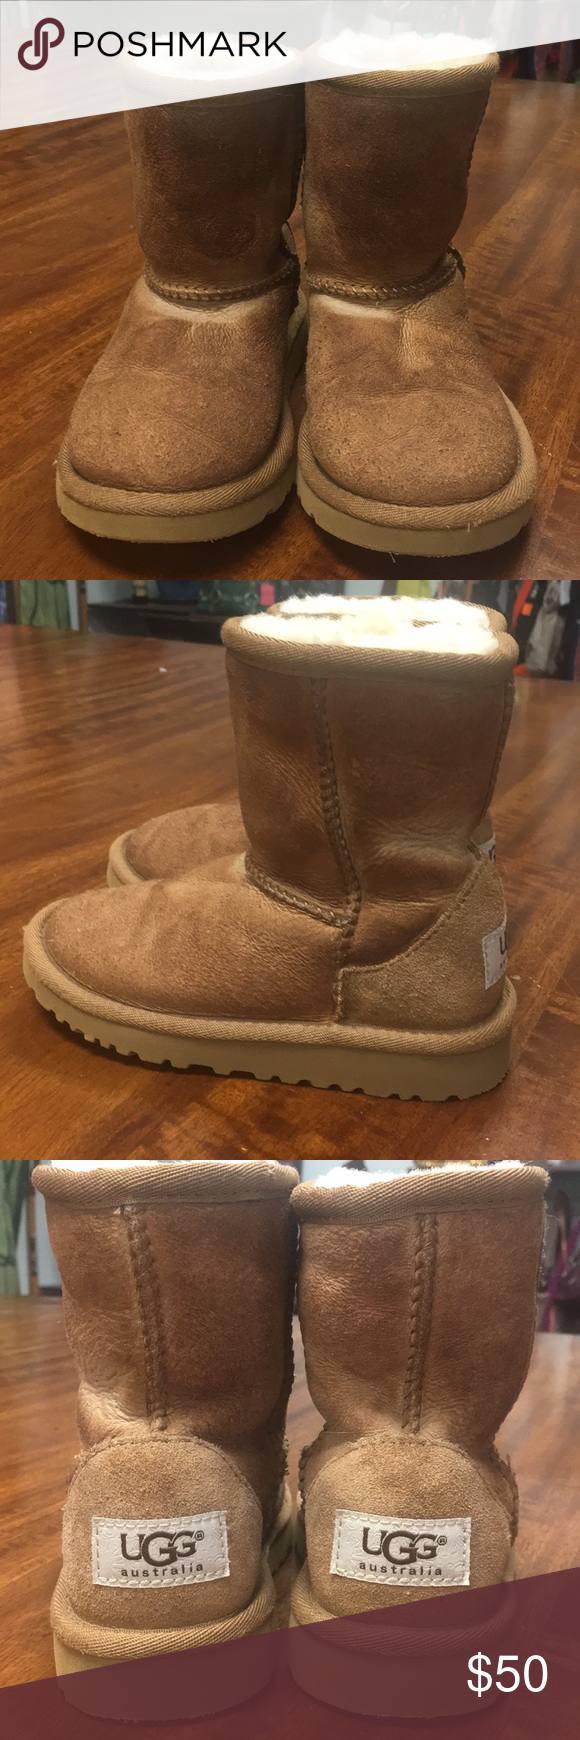 Ugg Toddlers' Classic Ii Boot In Chestnut, Size 6, Shearling